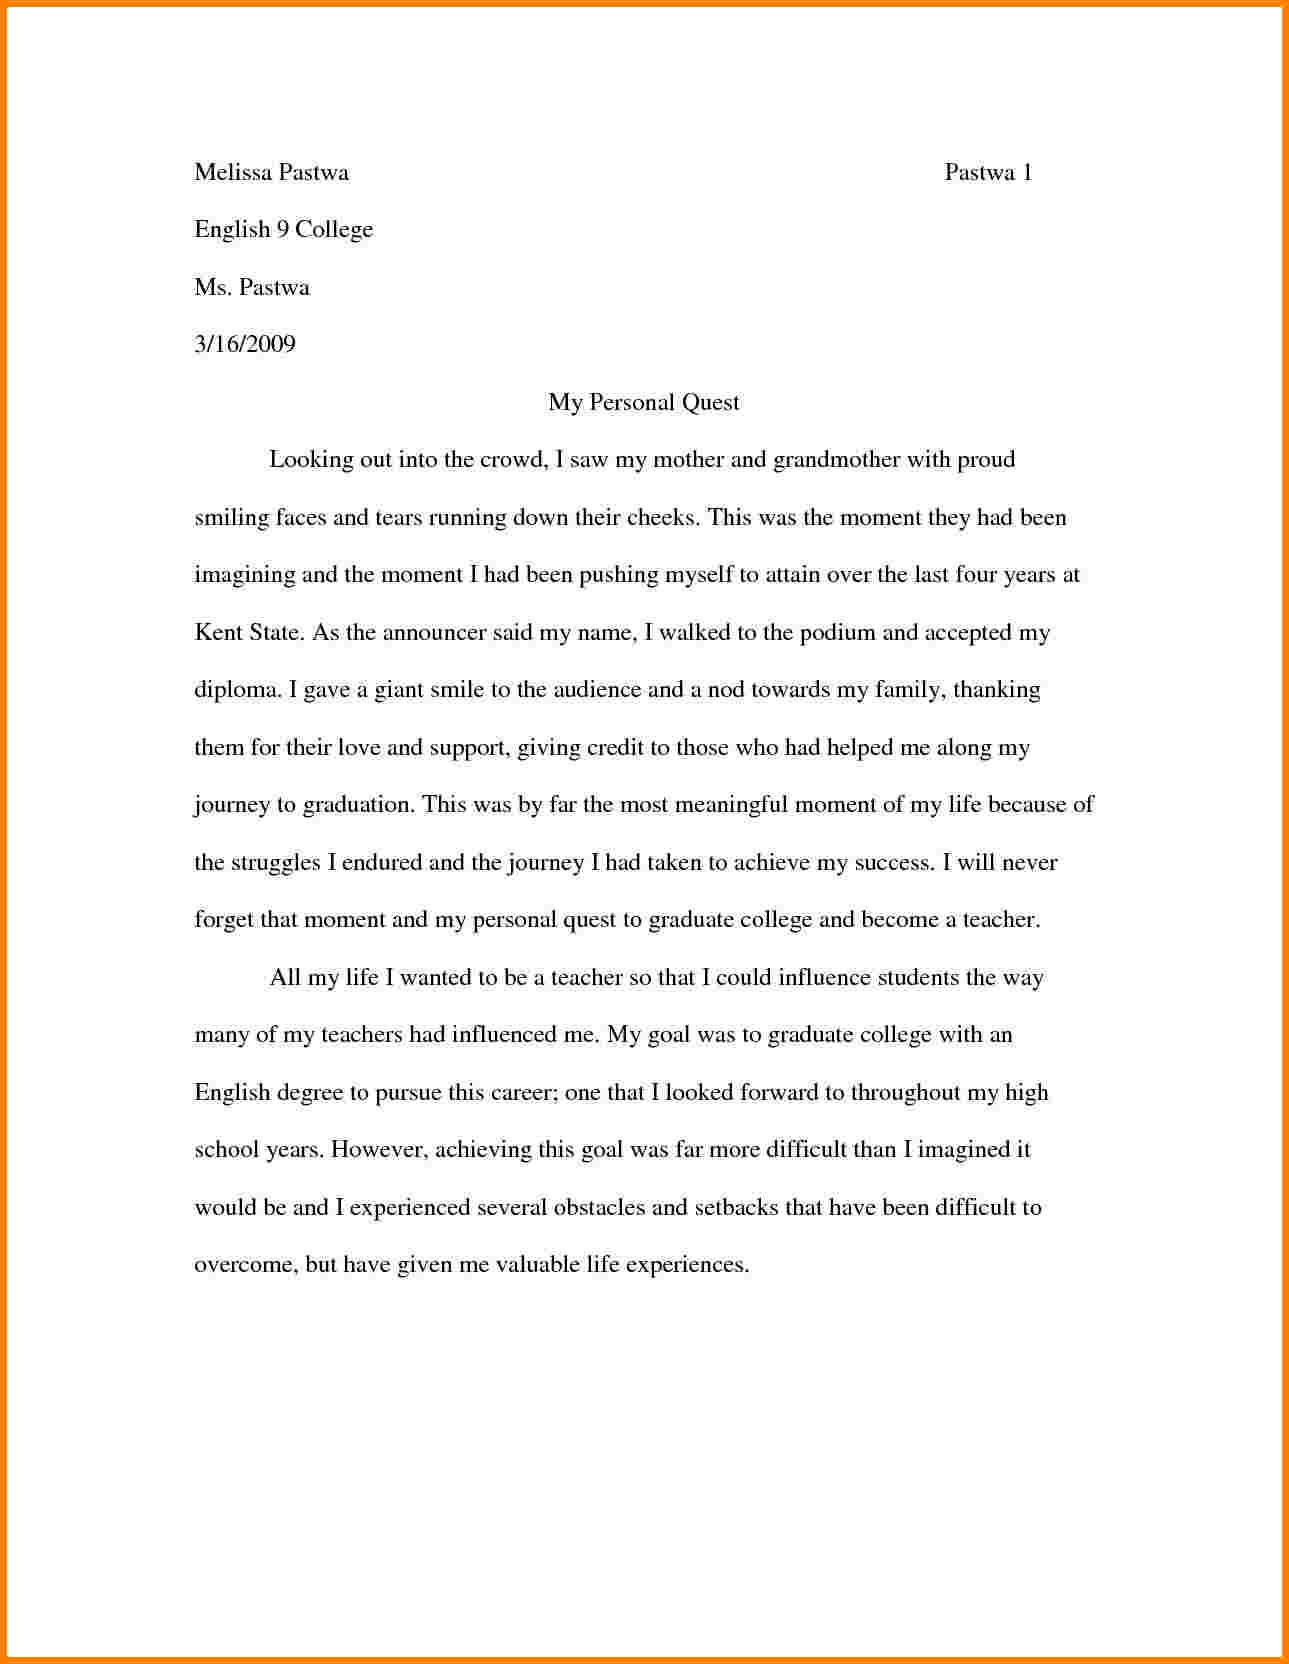 012 3341381556 How To Write Proposal20nt Essay Topics Buy Researchs Cheap Examples20 Remarkable Research Paper Full